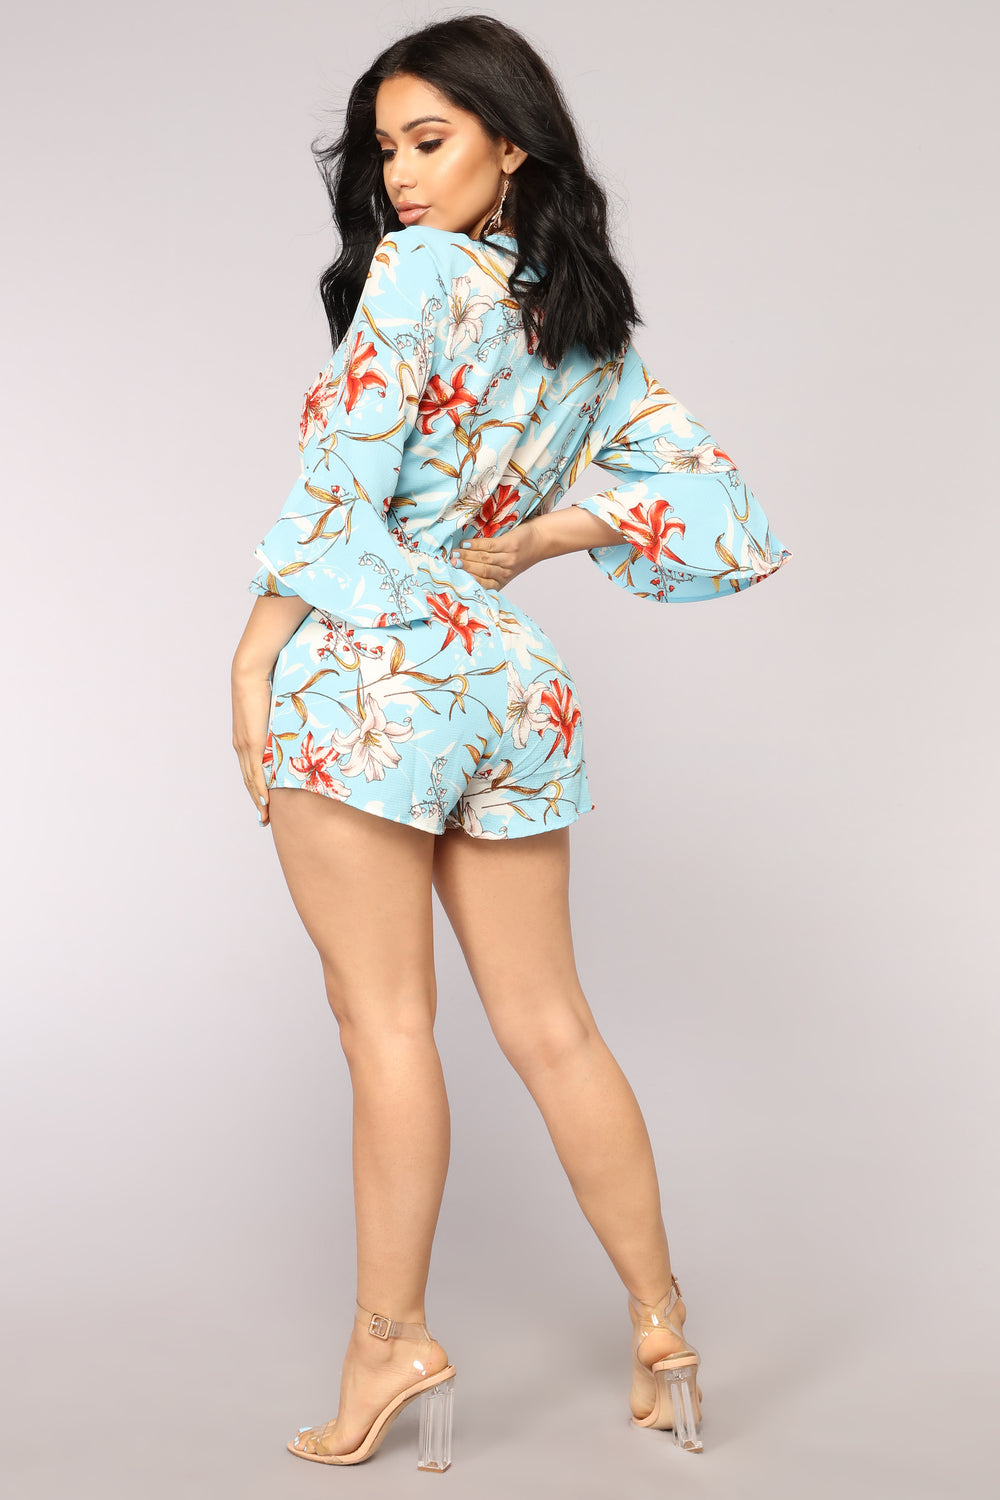 Moonlight Drive Tropical Romper - Blue